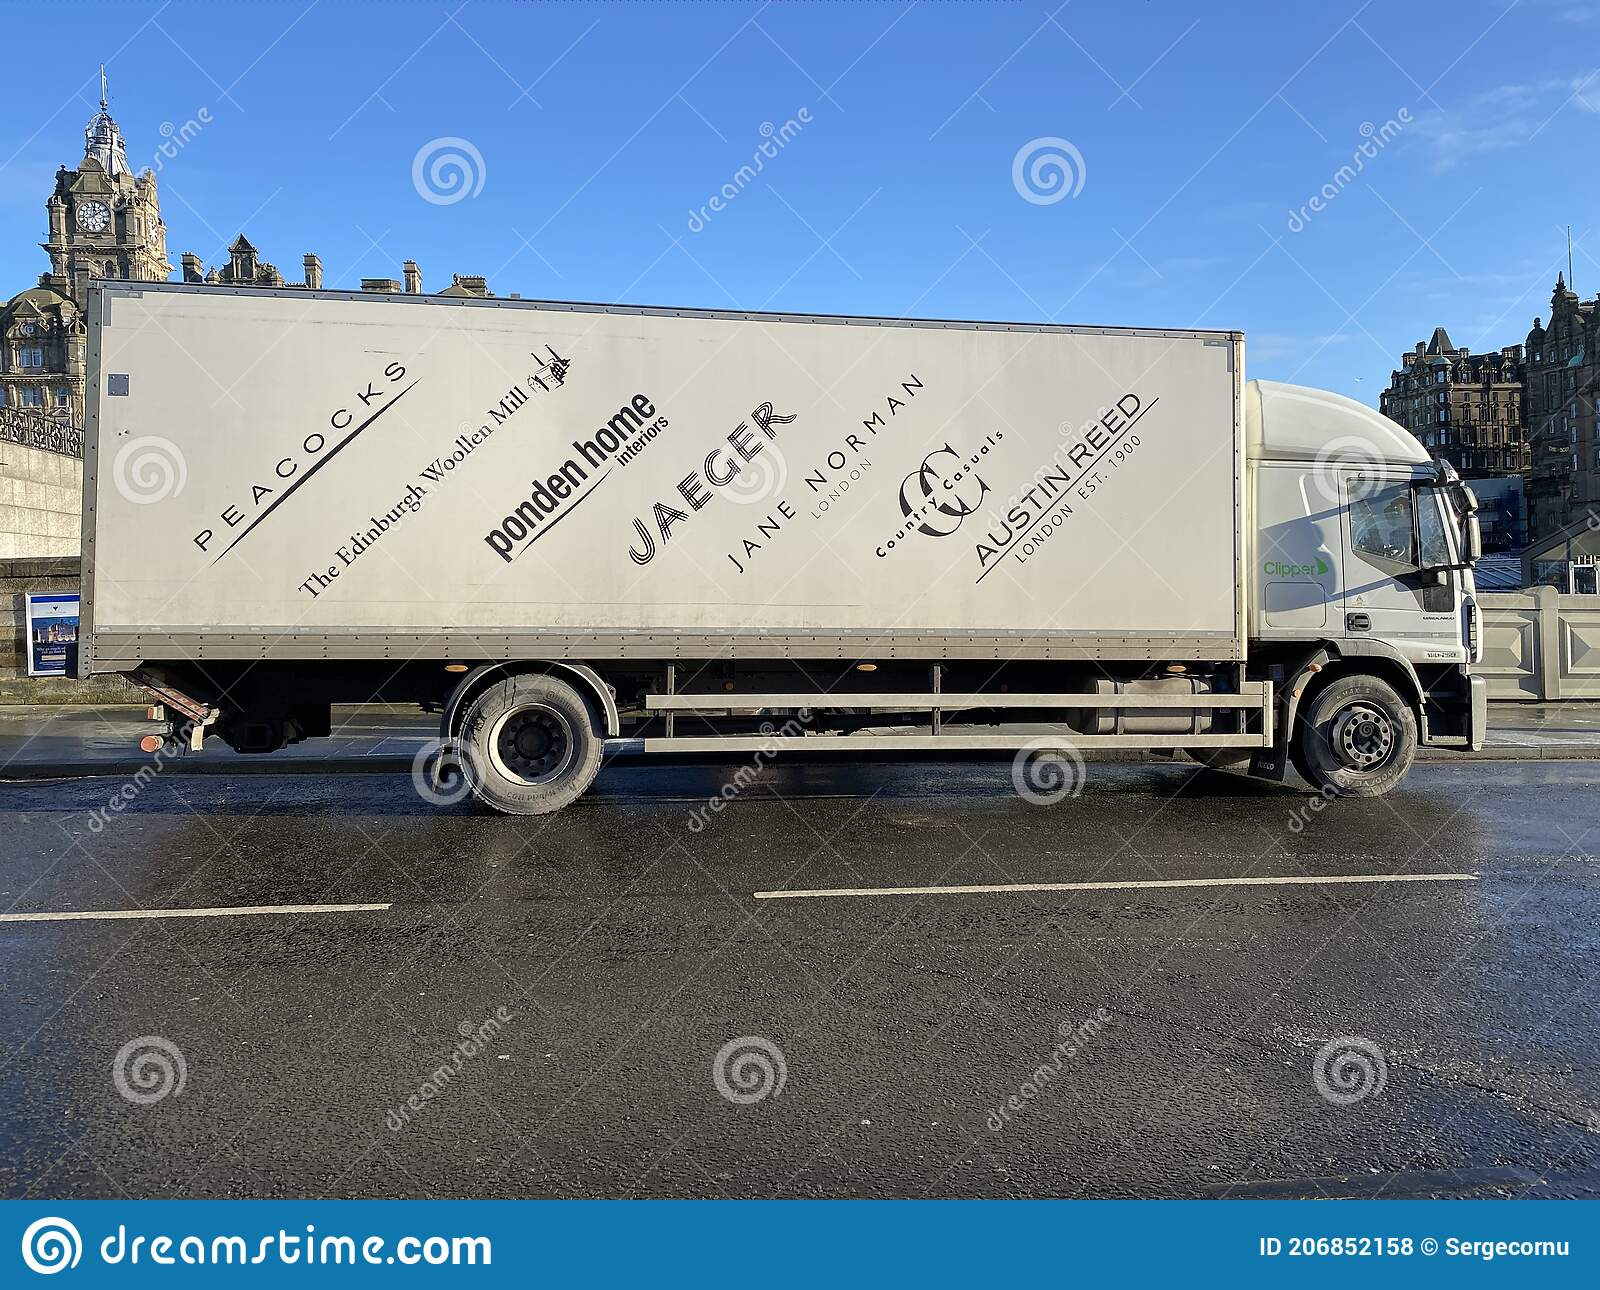 Edinburgh Woollen Mill Lorry Parked On The Street Editorial Stock Photo Image Of Finance Jaeger 206852158